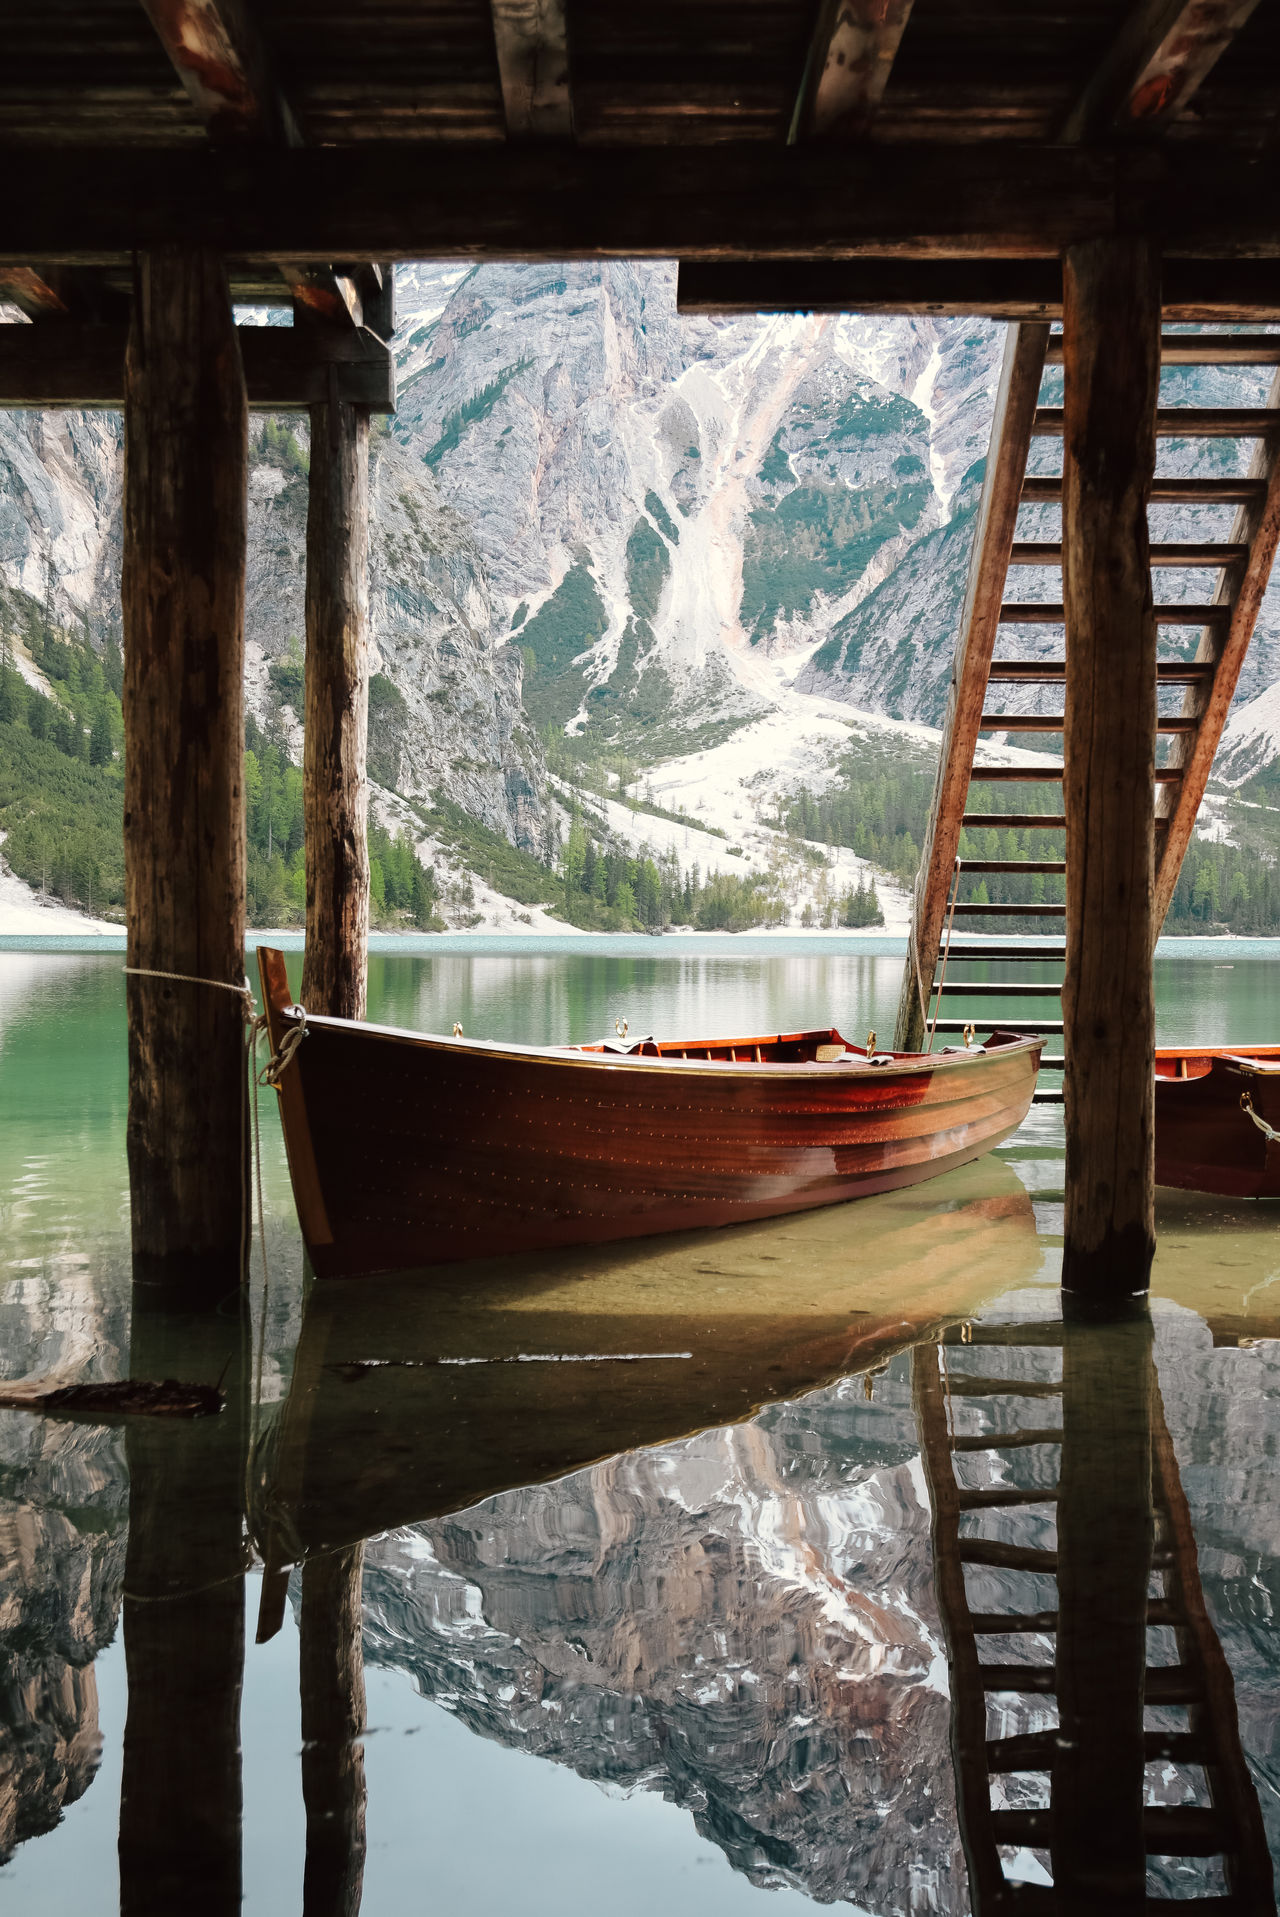 Beauty In Nature Beneath Boat Braies Cold Temperature Dock Ladder Lake Lakescape Mountain Mountain Range Nature Nature Photography Nautical Vessel No People Outdoors Reflection Sail Sky Snow The Great Outdoors - 2017 EyeEm Awards Tranquil Scene Tranquility Water Wooden